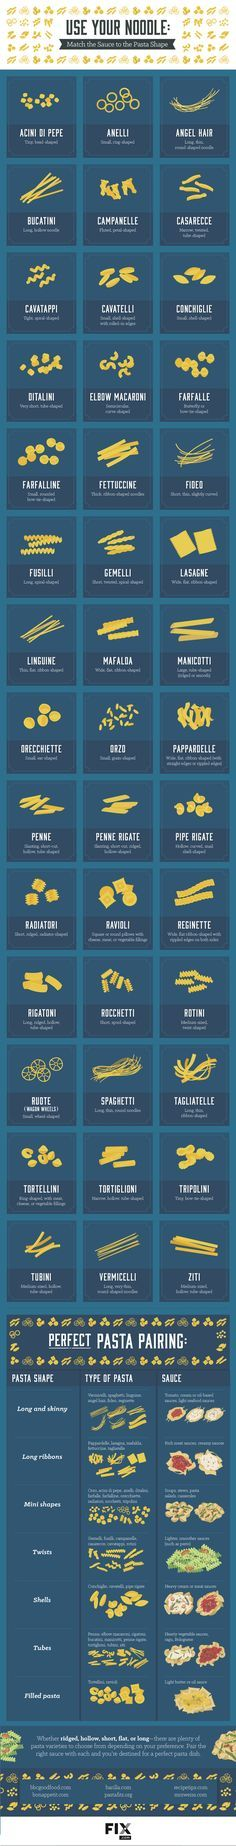 Tired of the same old spaghetti and penne noodles? Next time you are craving delicious Italian comfort food, try something new. Learn all about the countless pasta varieties in our comprehensive guide!